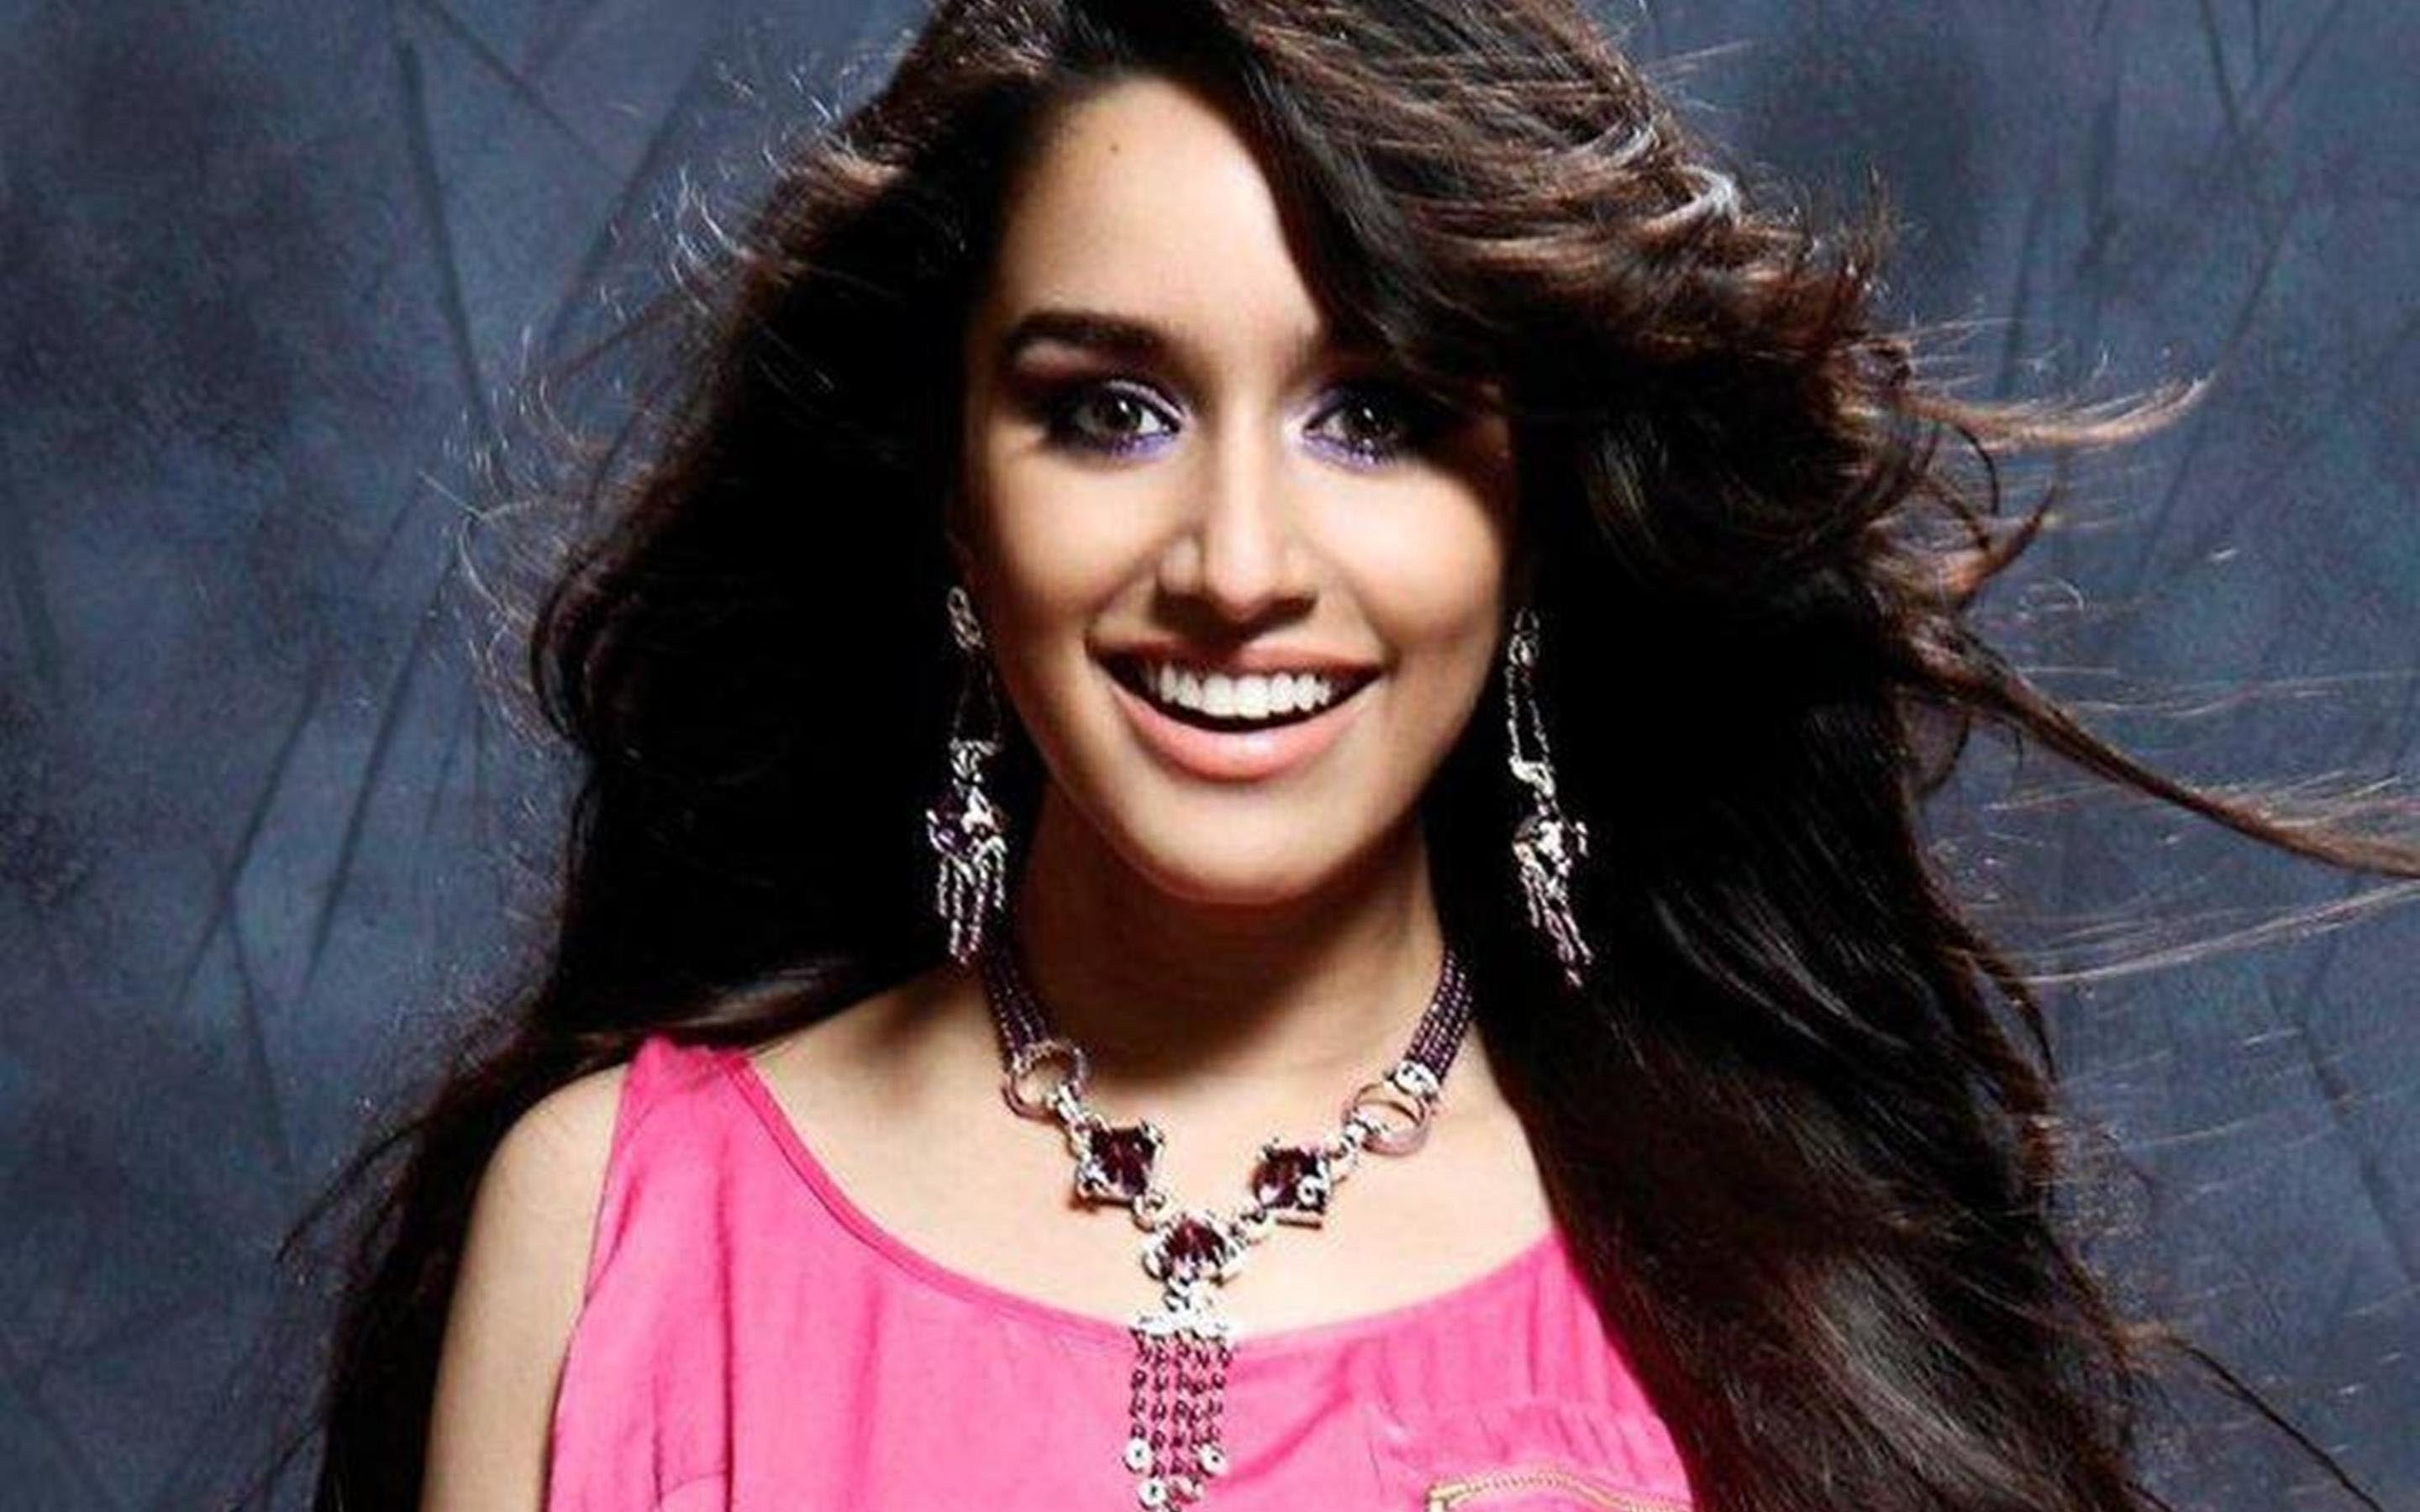 Shraddha Kapoor Cute Smi HD Wallpaper Background Images 2880x1800